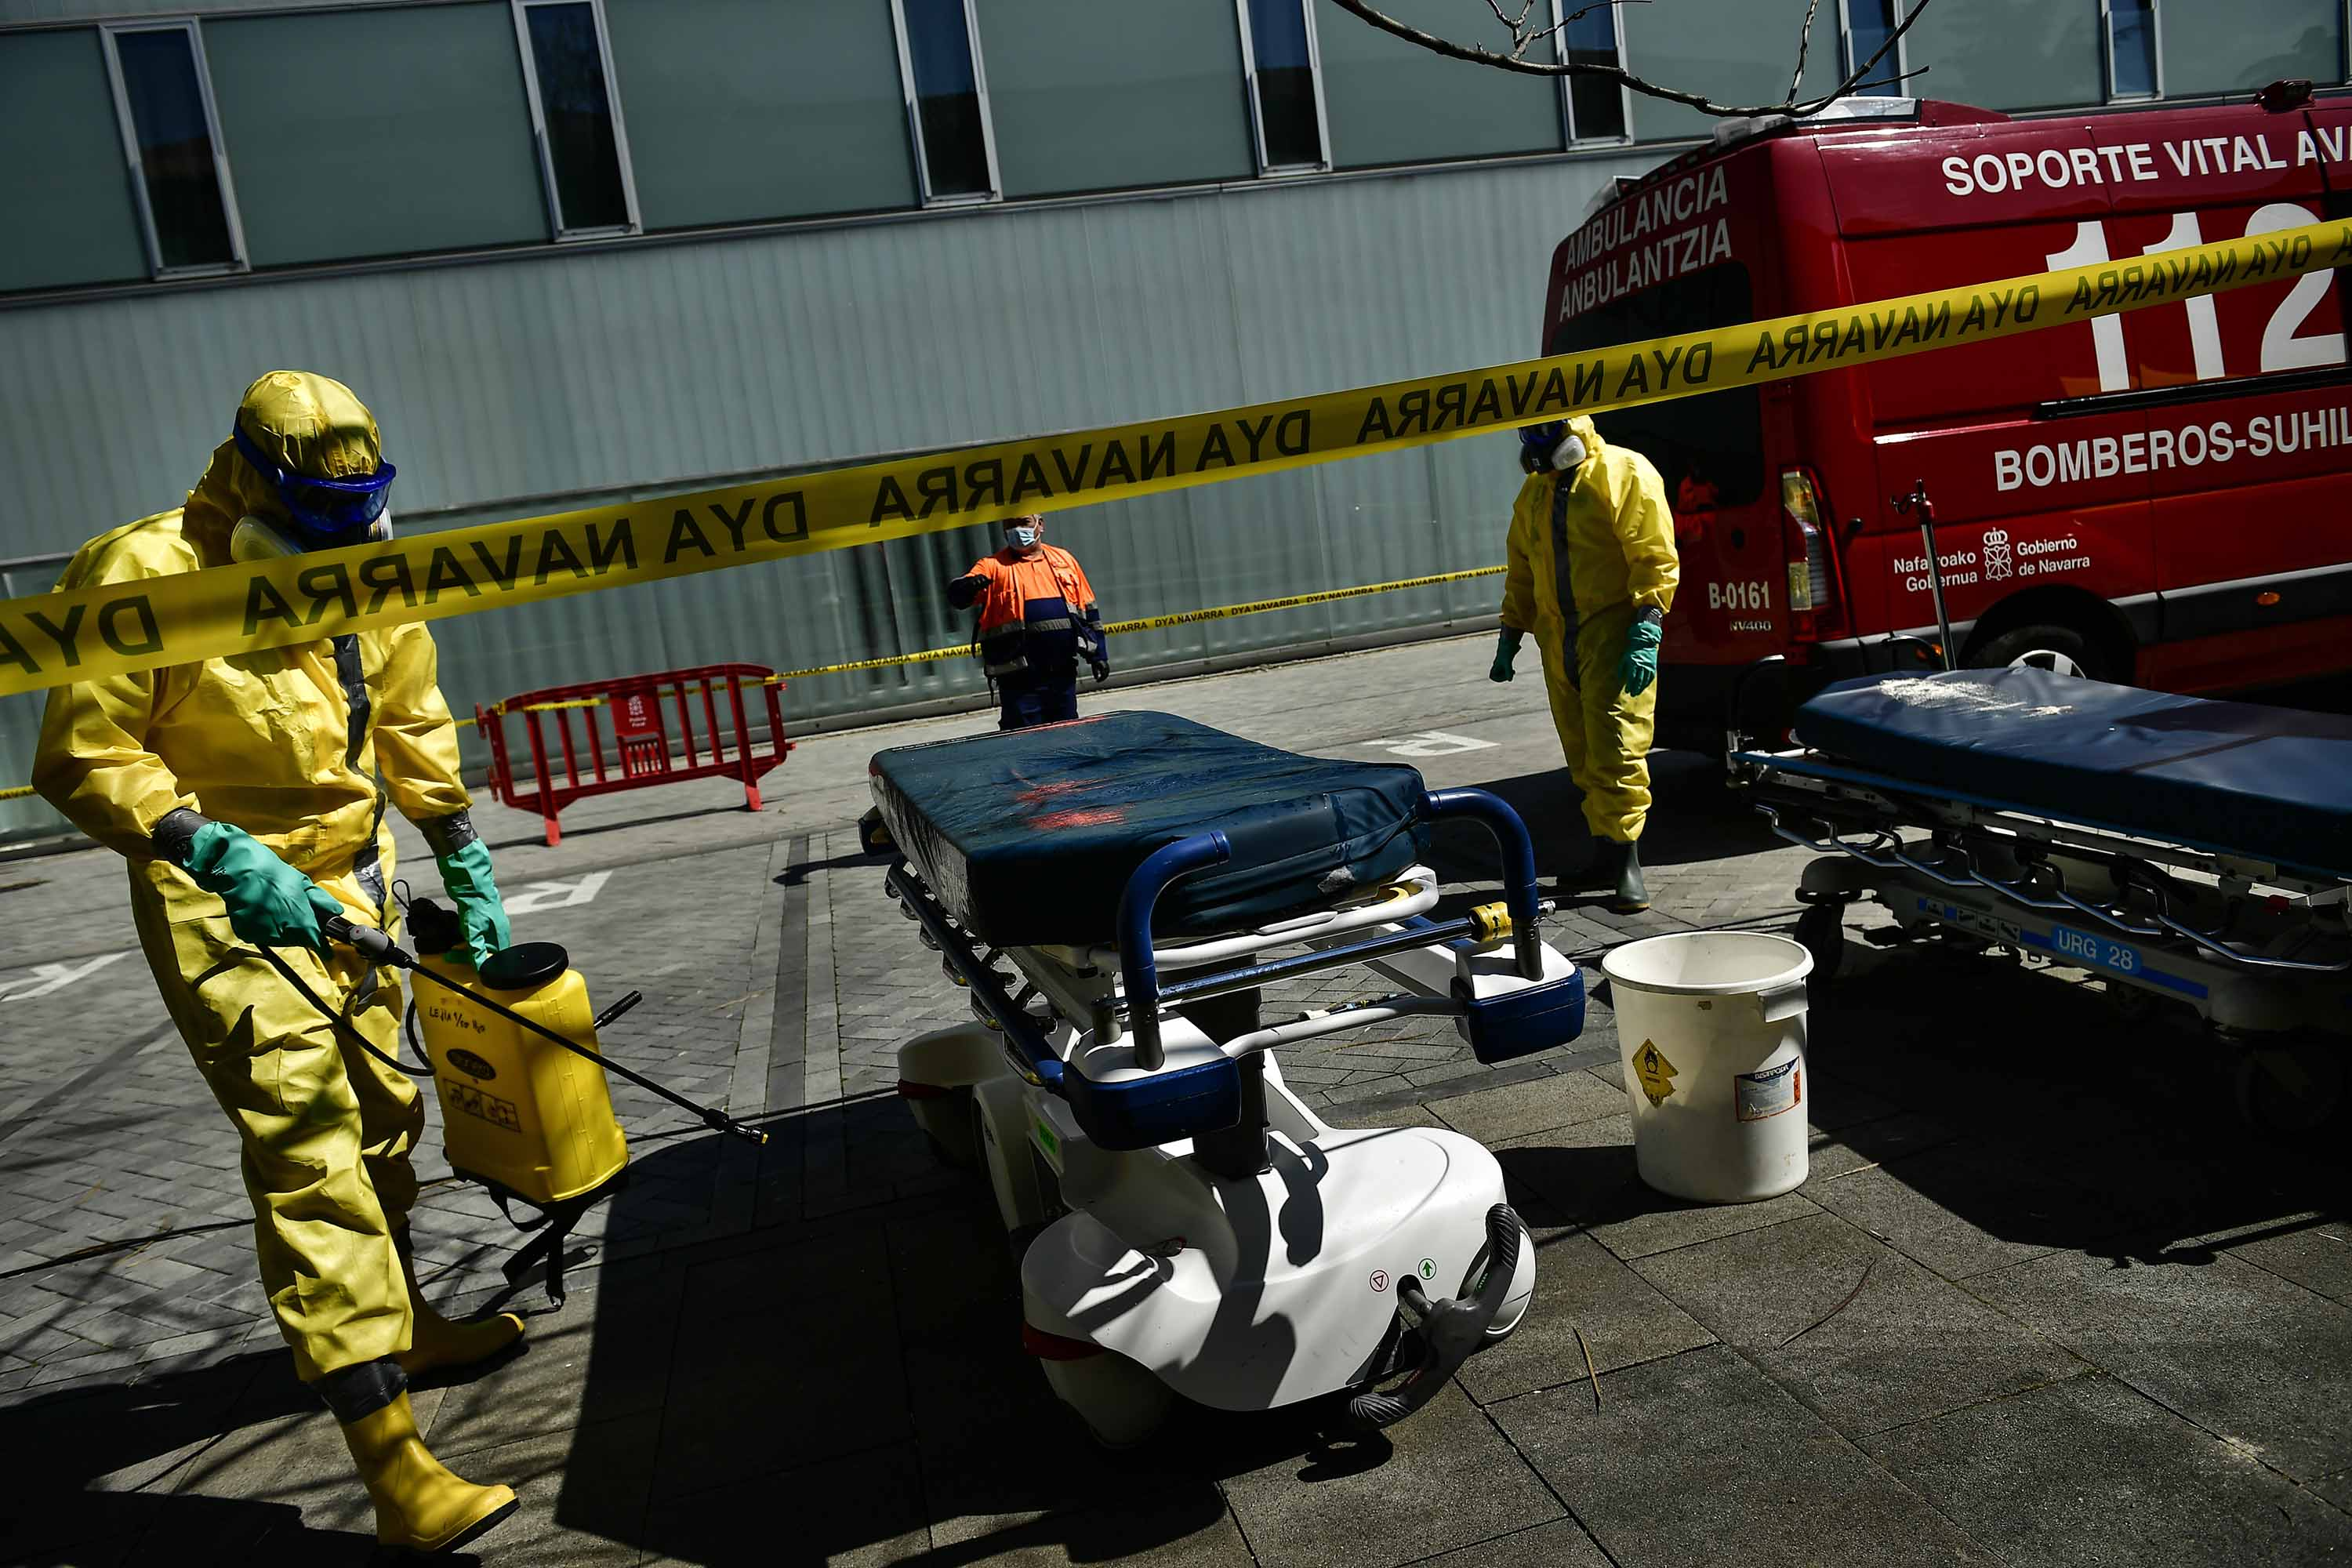 Volunteer workers from a regional search and rescue crew disinfect a stretcher in Pamplona, Spain, on March 26.